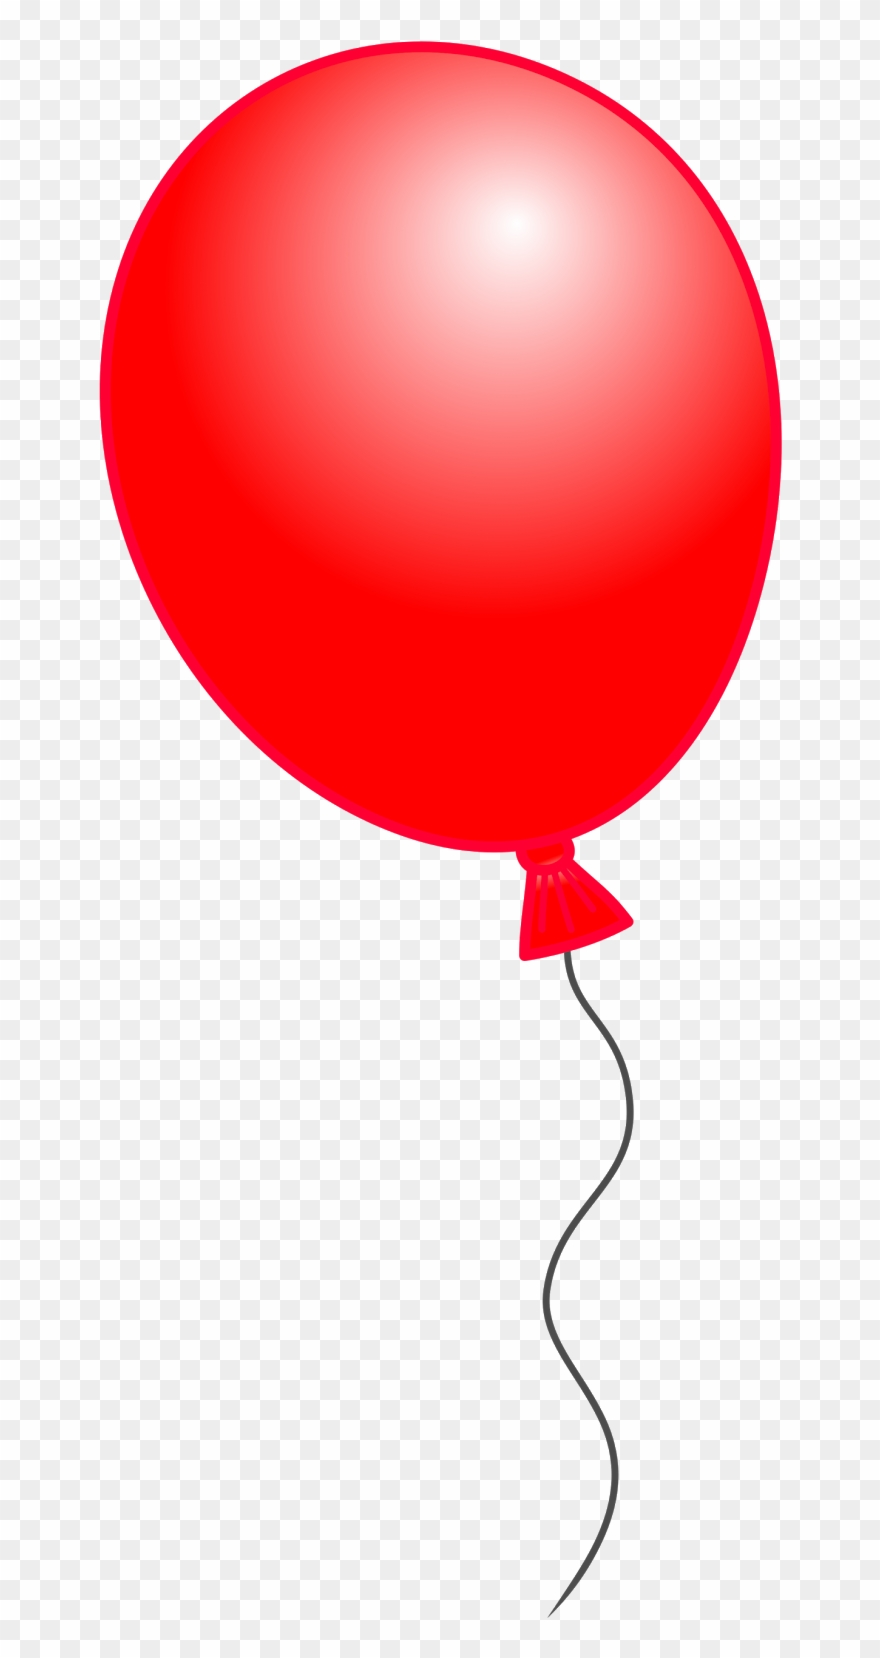 Classroom Treasures Birthday Balloons And That S Who Red Balloon Clipart Png Download 41398 Pinclipart